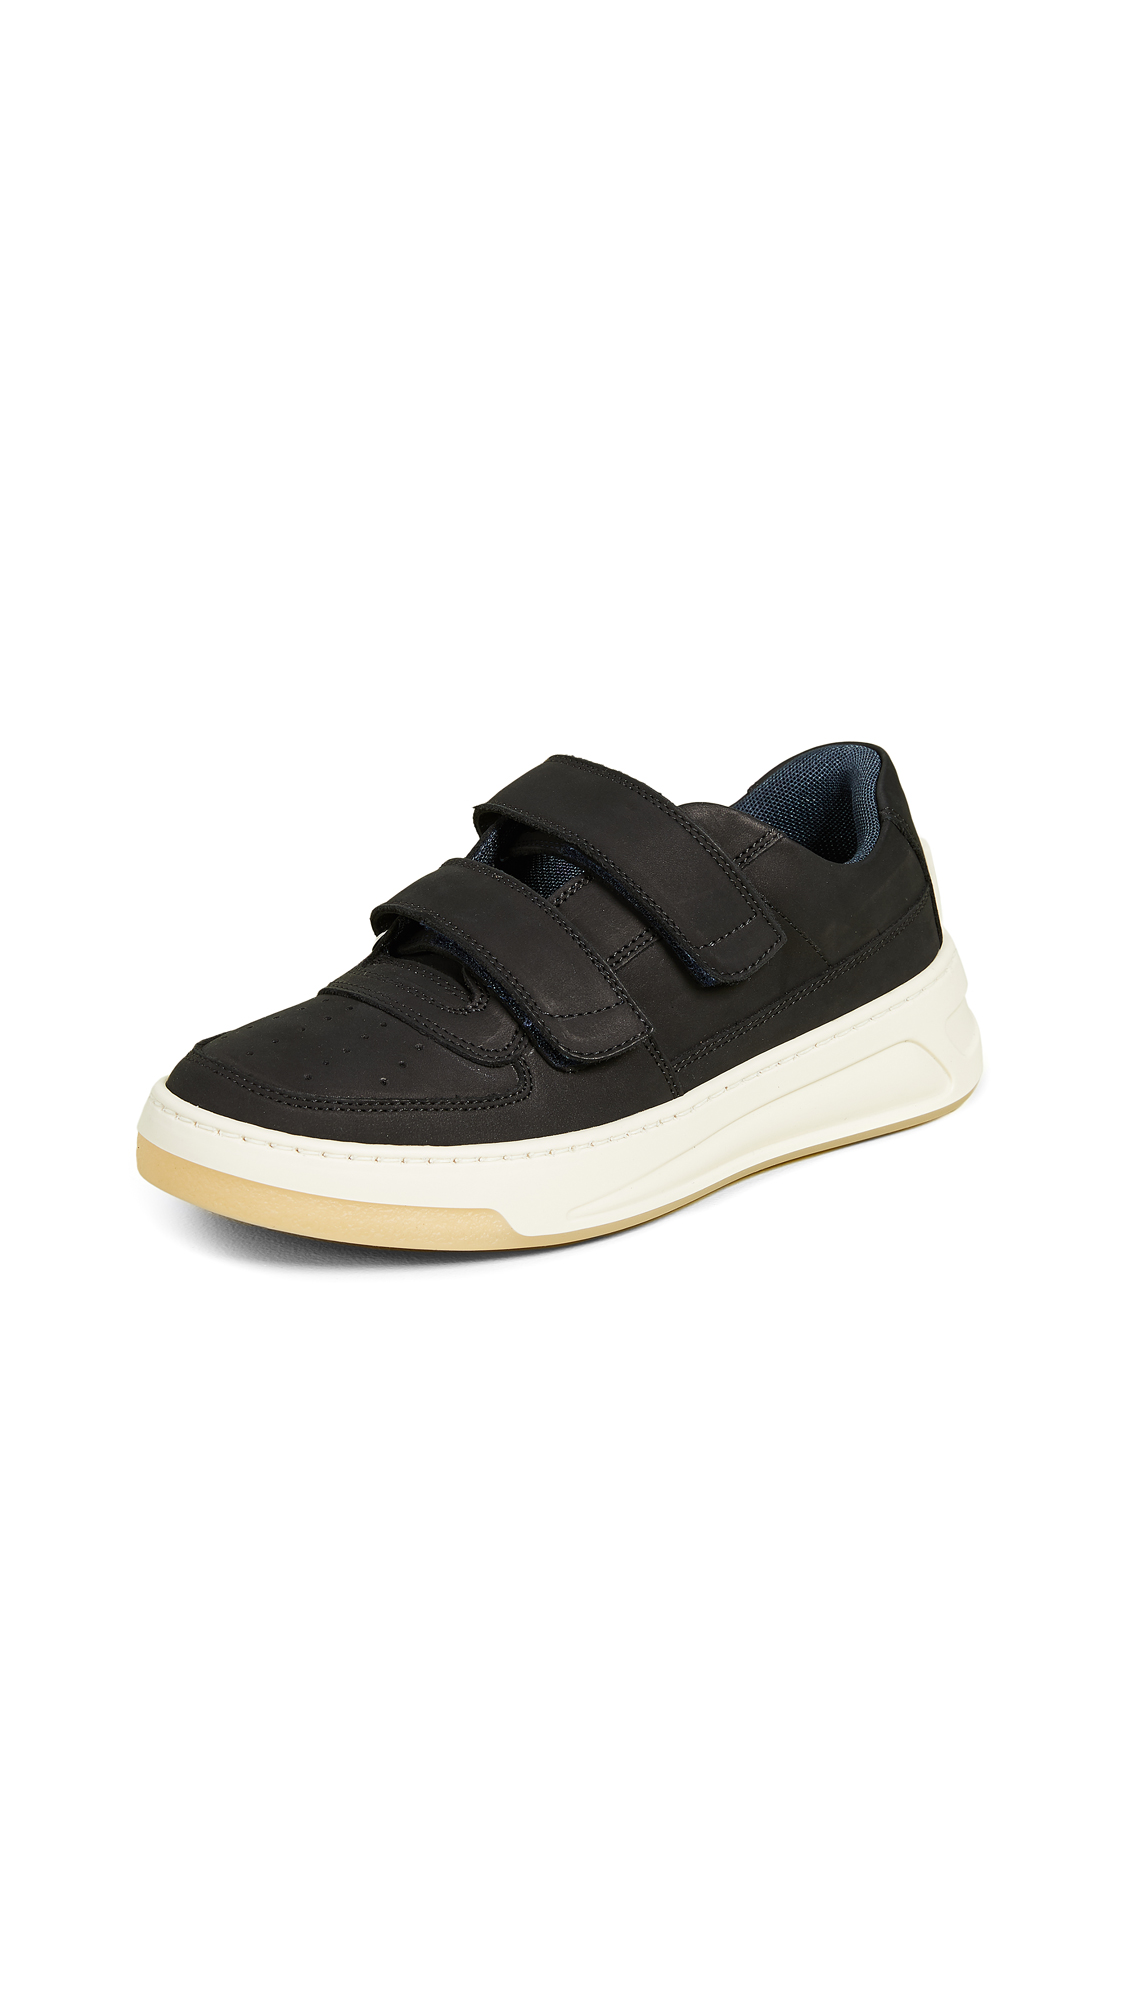 Acne Studios Steffey Nubuck Sneakers In Black/White